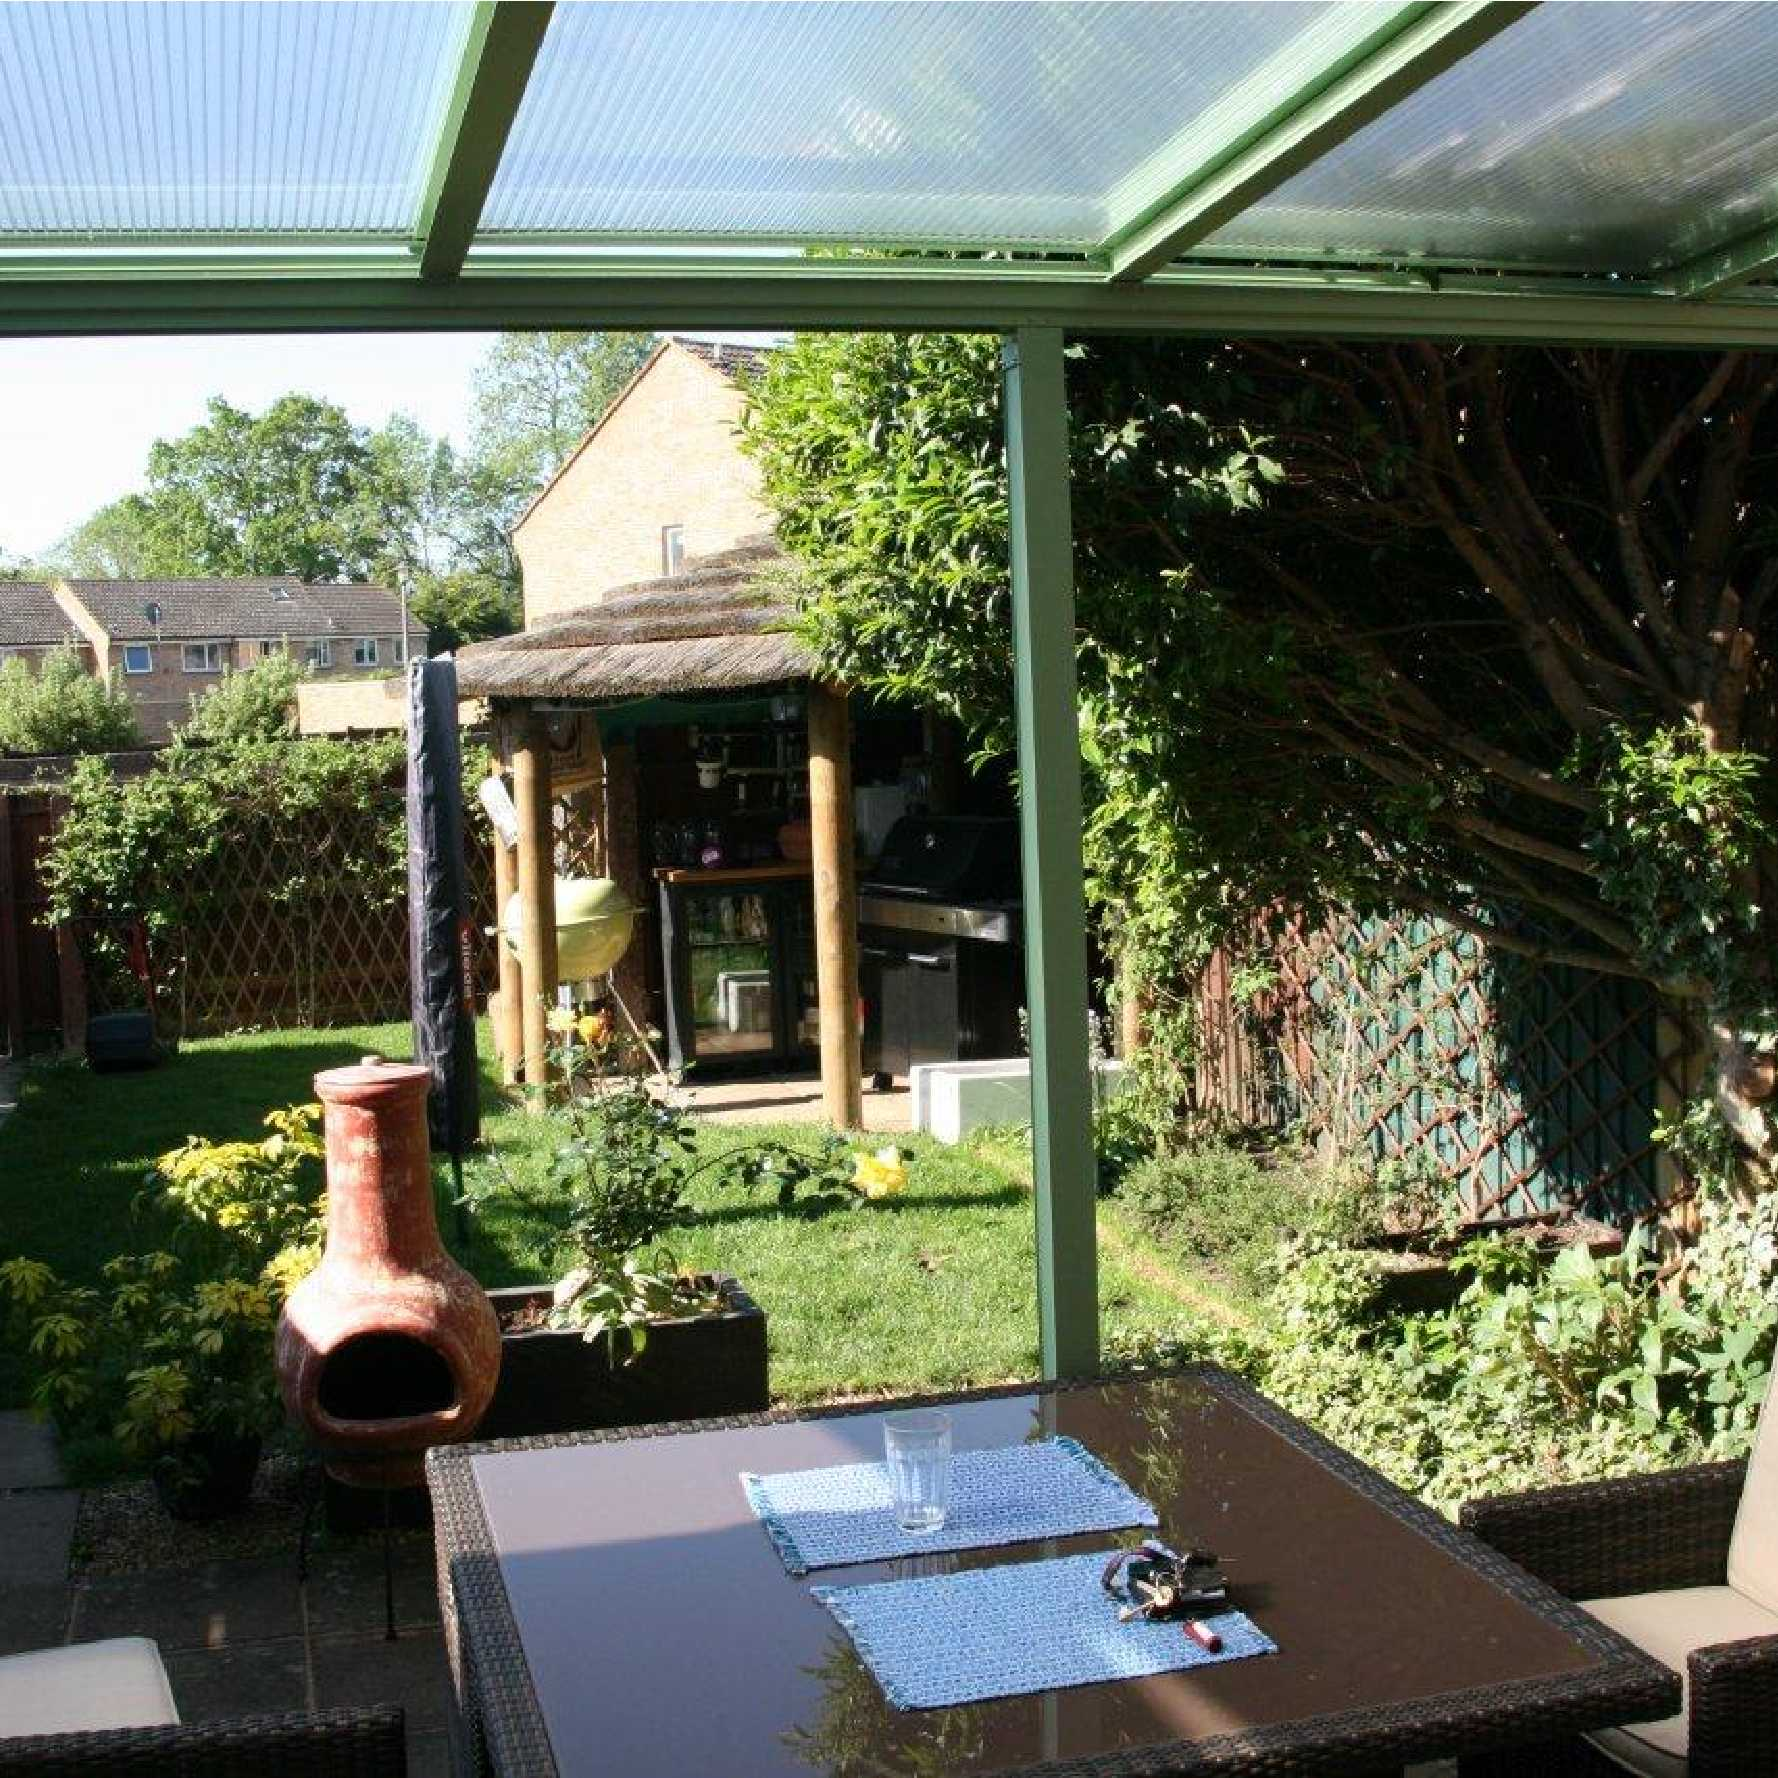 Affordable Omega Smart White Lean-To Canopy with 16mm Polycarbonate Glazing - 10.6m (W) x 1.5m (P), (5) Supporting Posts